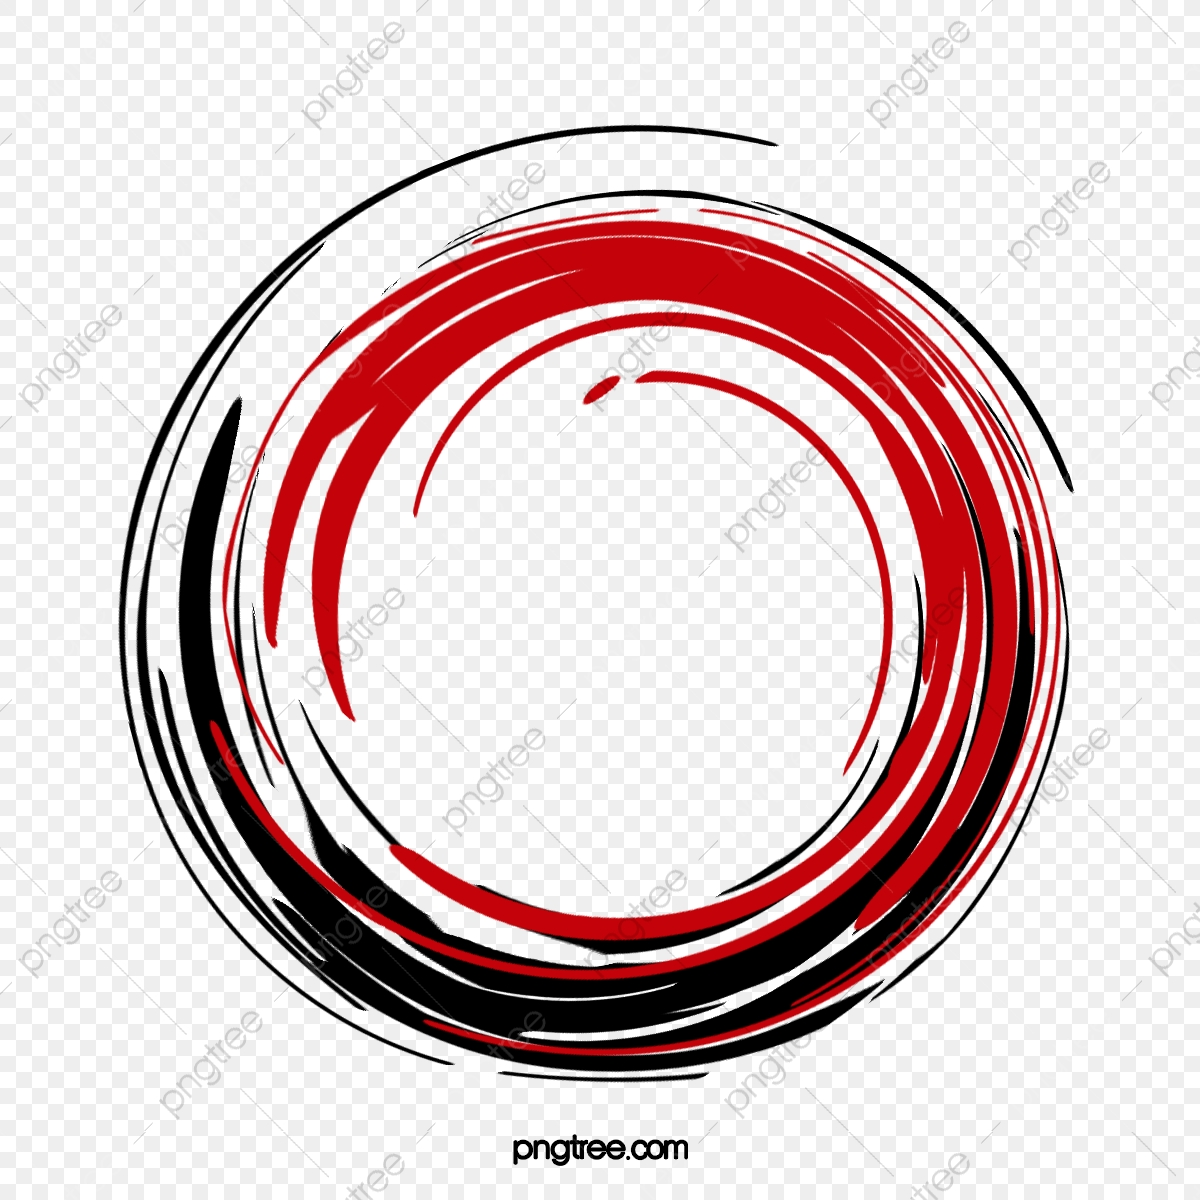 circle png vector psd and clipart with transparent background for free download pngtree https pngtree com freepng vector red circle ink 5054033 html